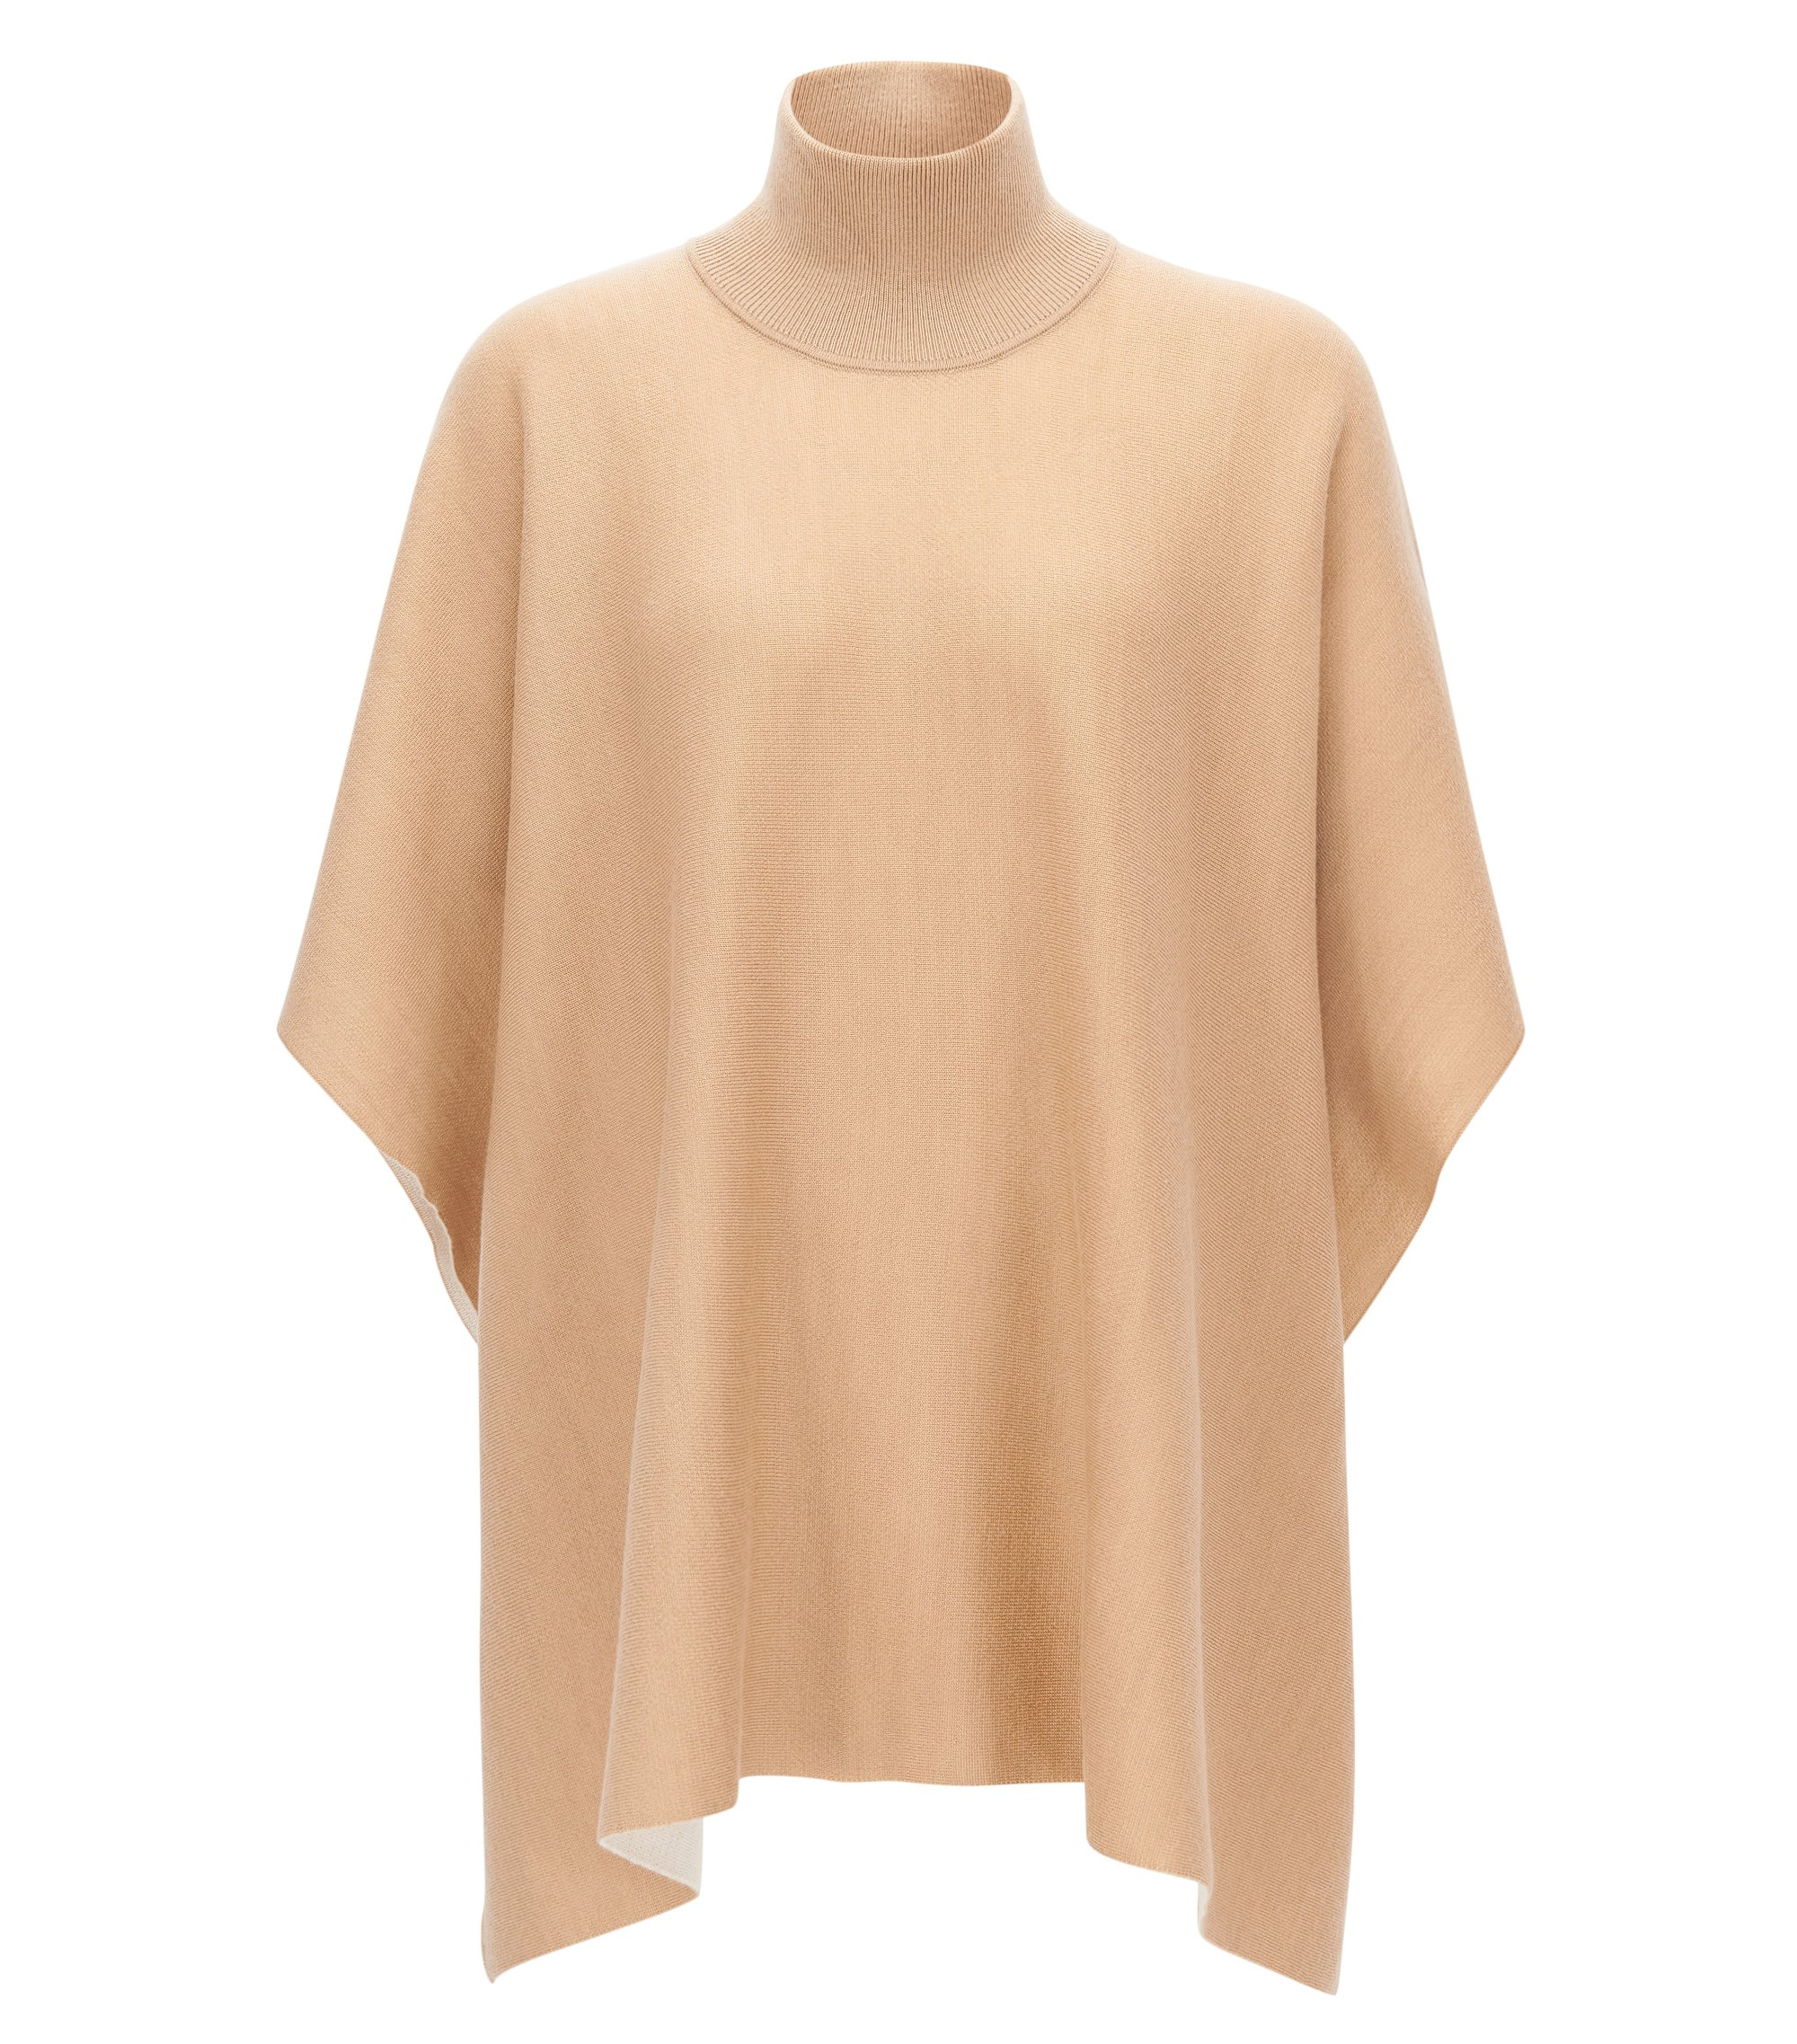 Virgin Wool Turtleneck Poncho | Lija, Patterned